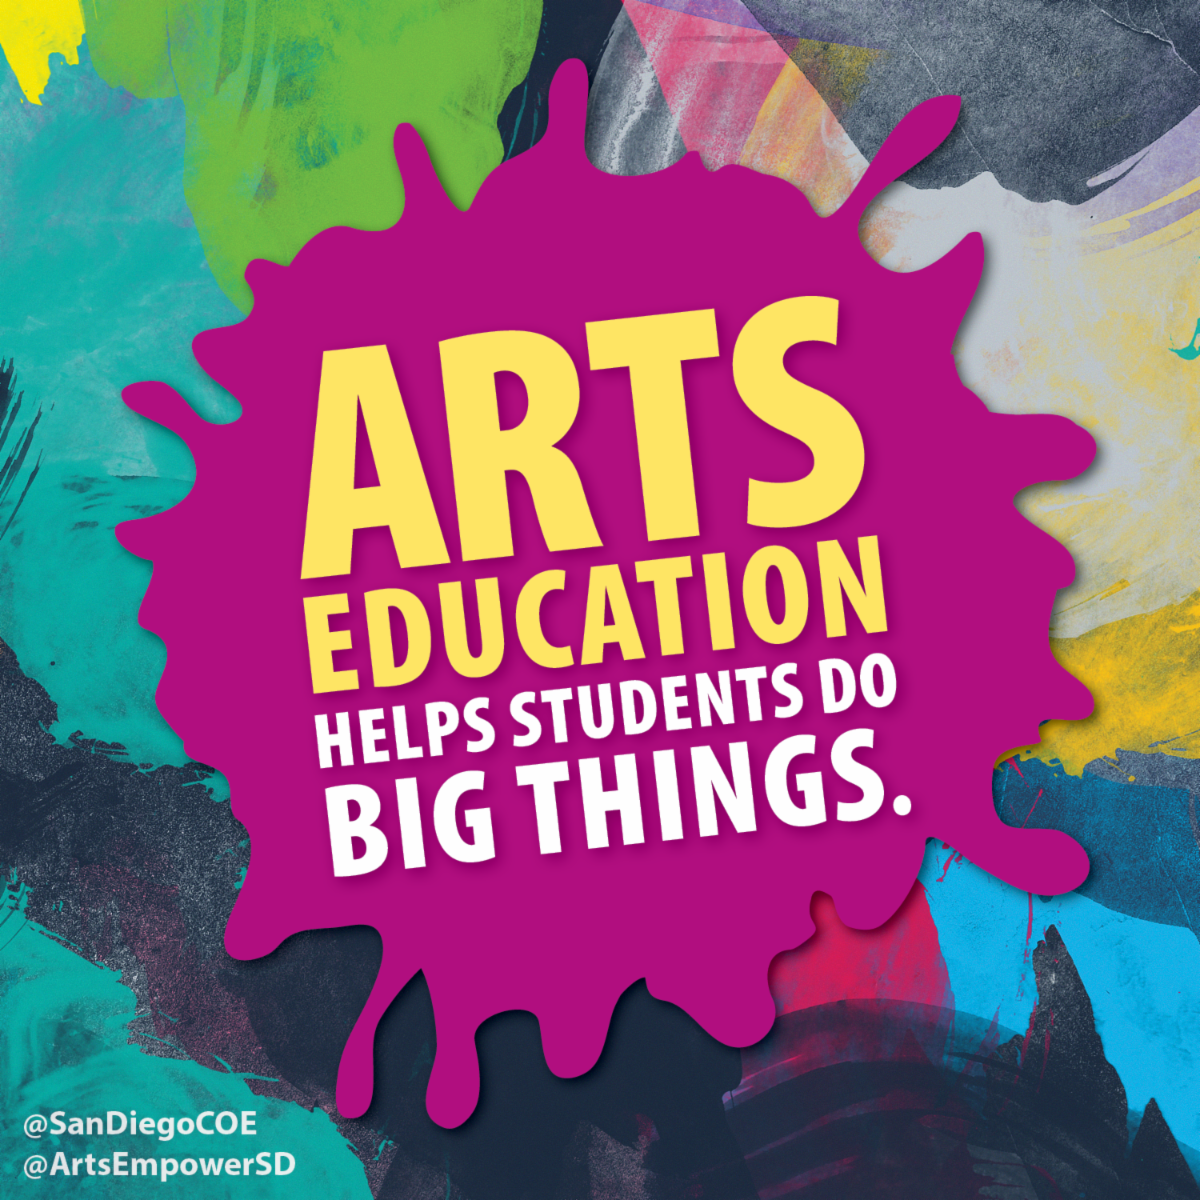 Arts education helps students do big things paint splatter